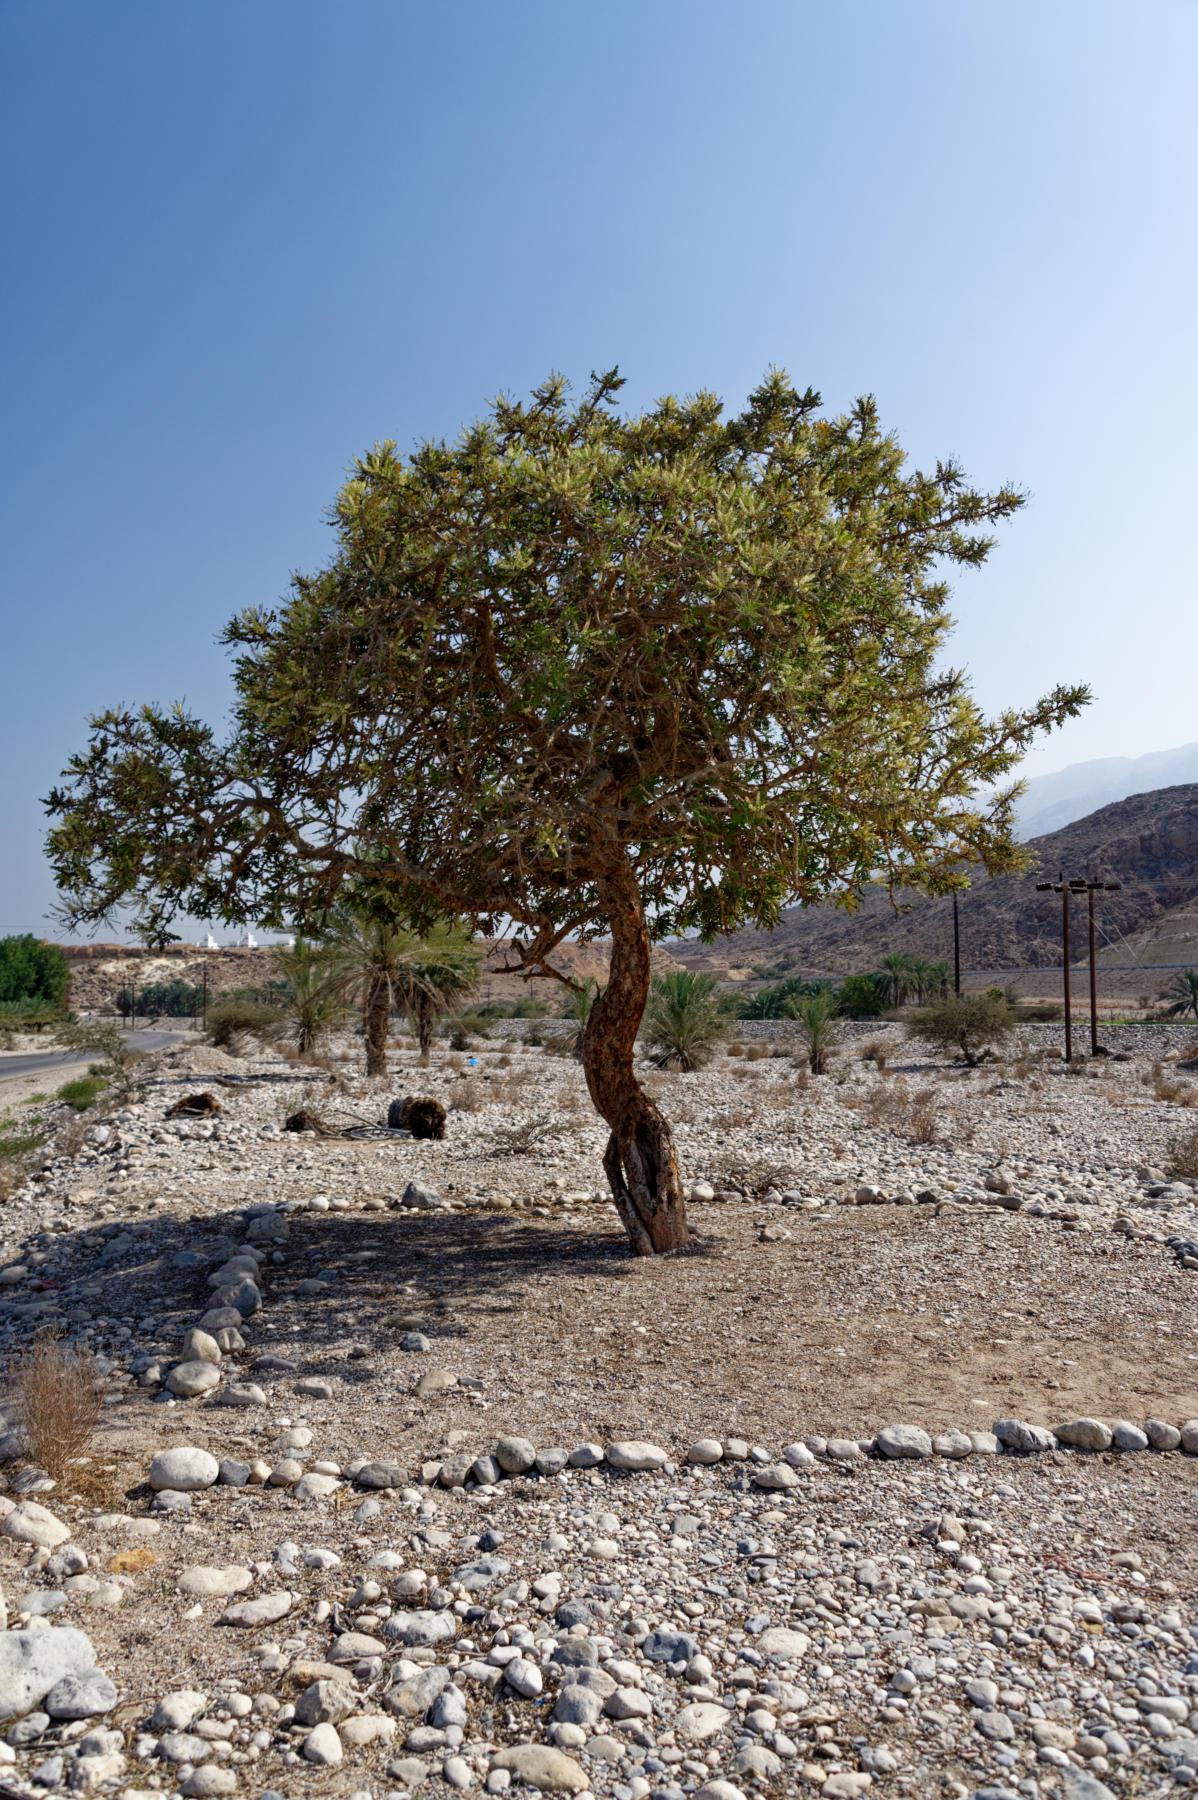 Frankincense tree, North Oman